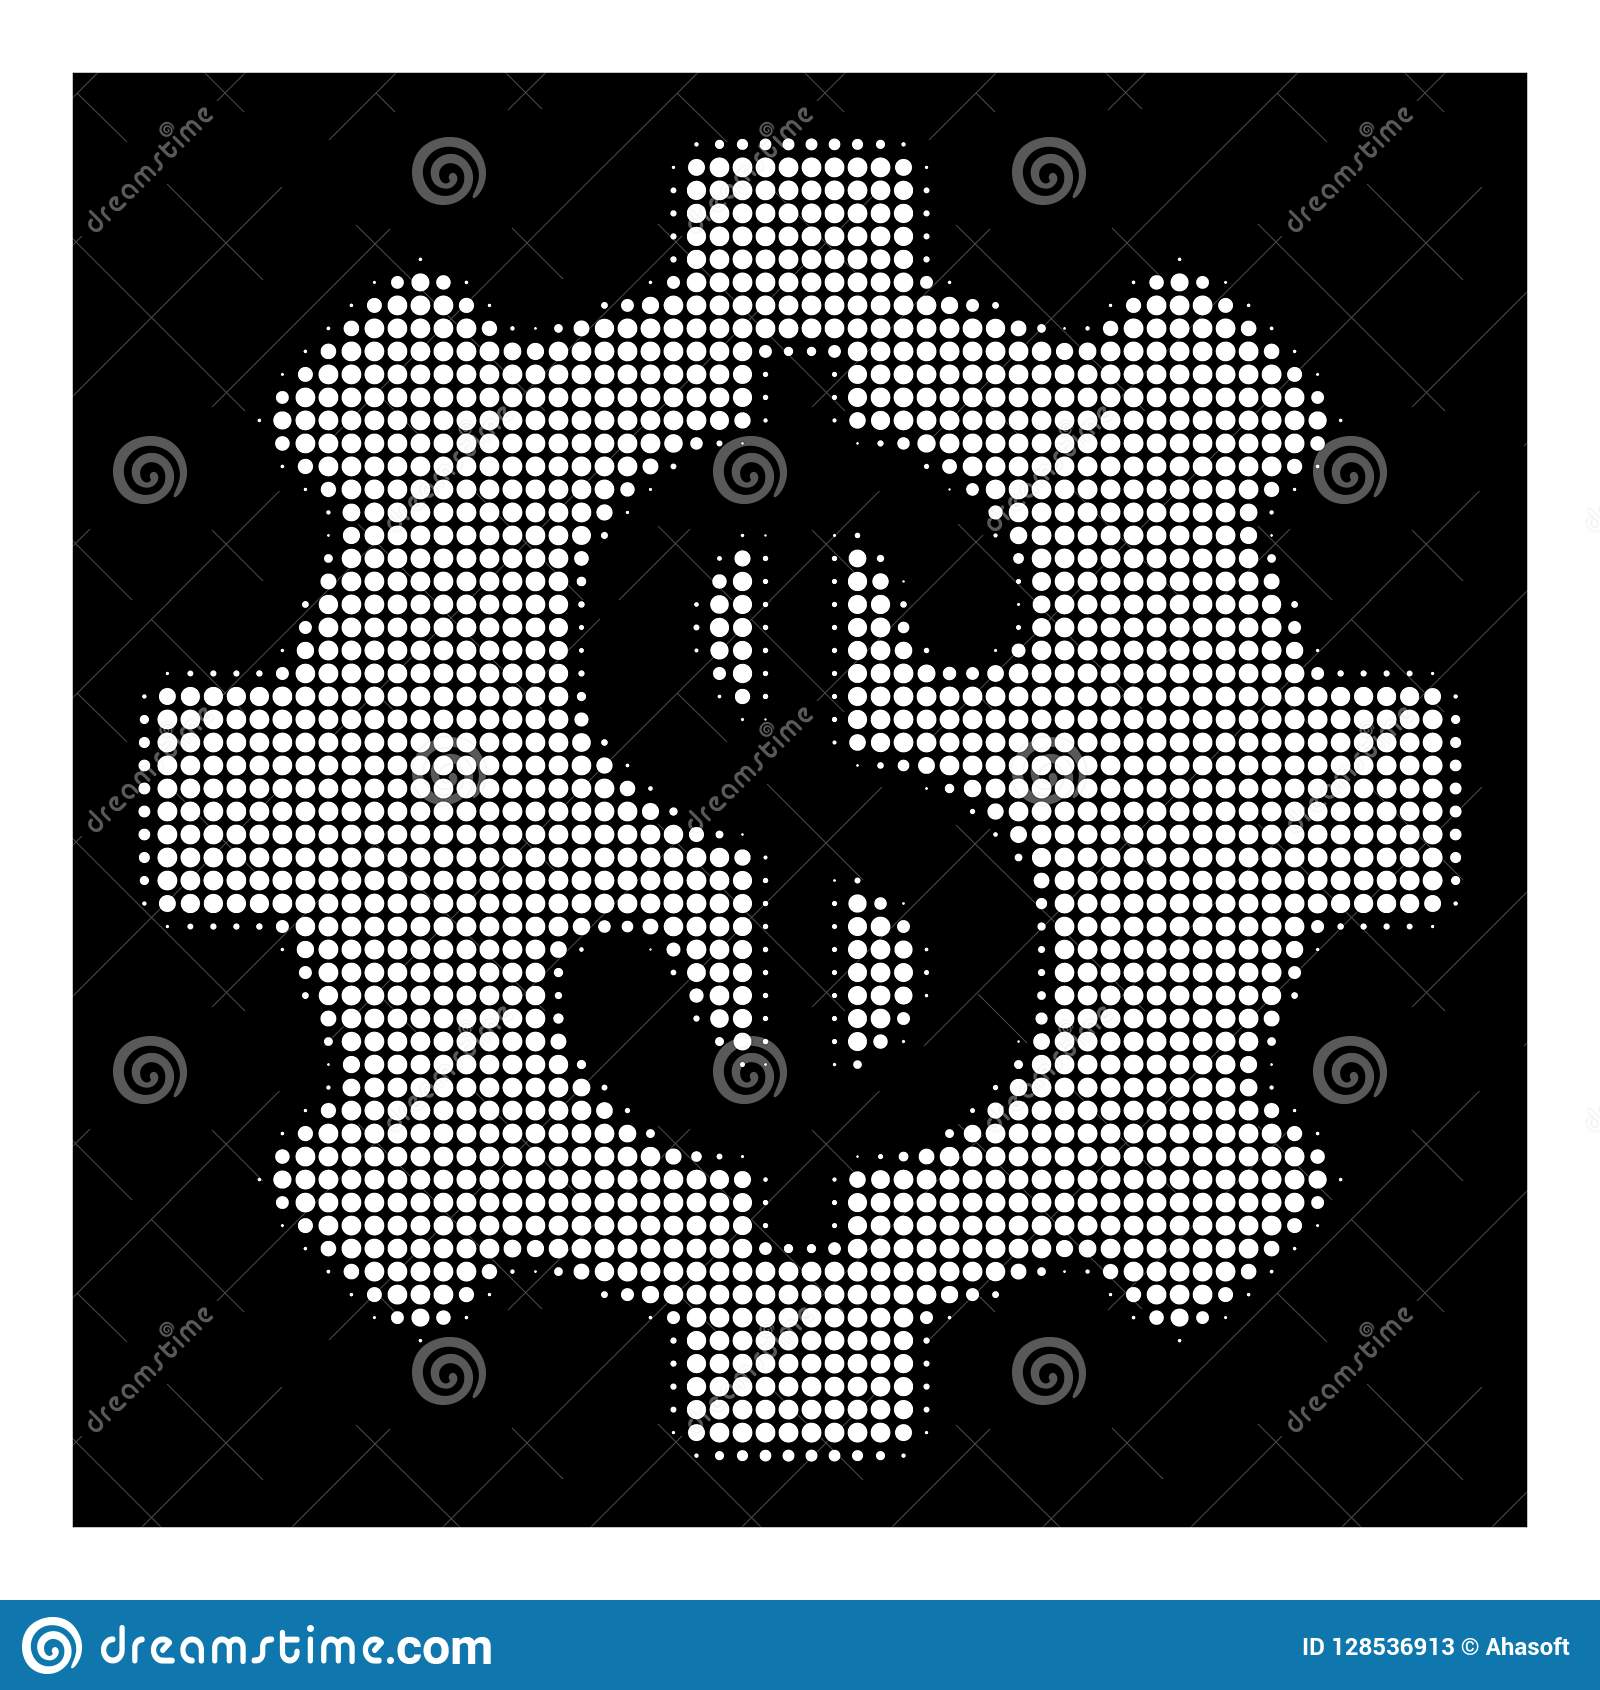 cost structure stock illustrations 1 211 cost structure stock illustrations vectors clipart dreamstime https www dreamstime com white halftone development cost icon halftone dotted development cost icon white pictogram dotted geometric structure image128536913